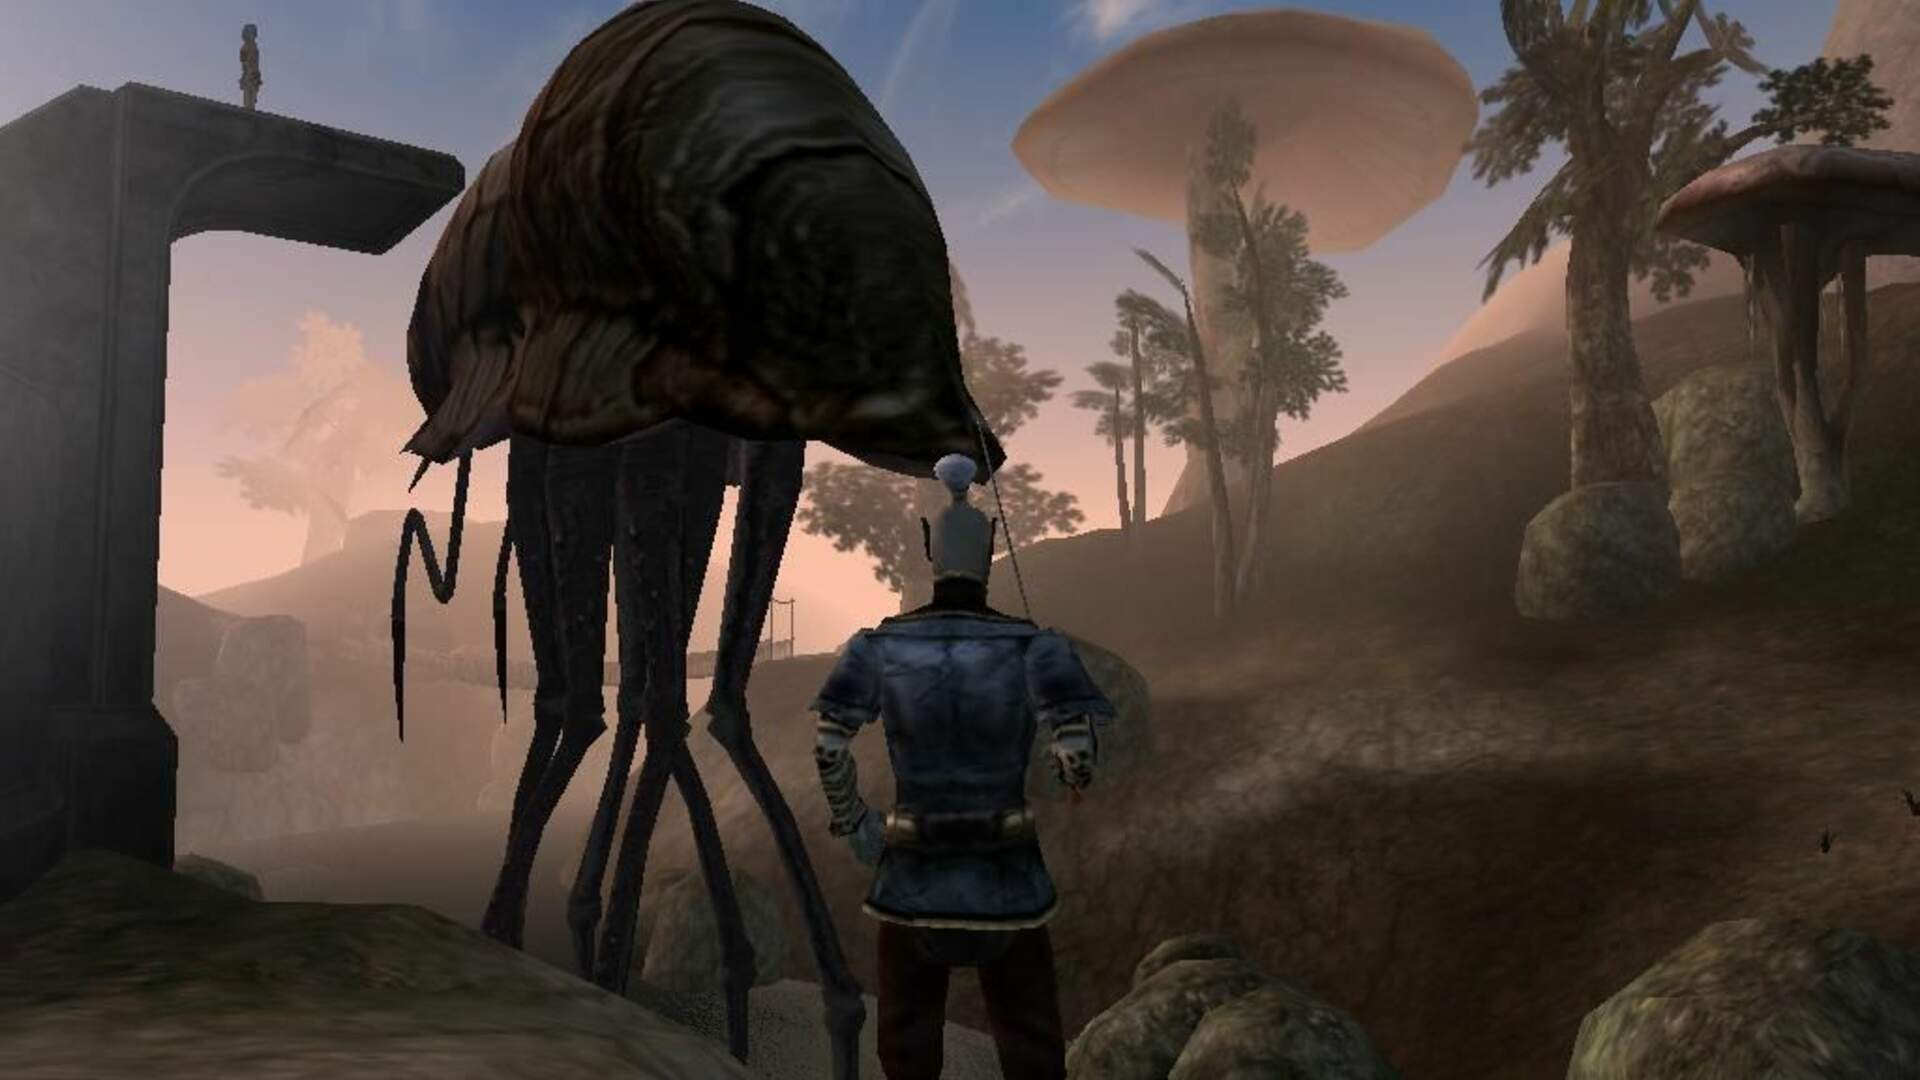 Elder Scrolls: Morrowind is Free to Download Until the Weekend After Suffering Server Troubles